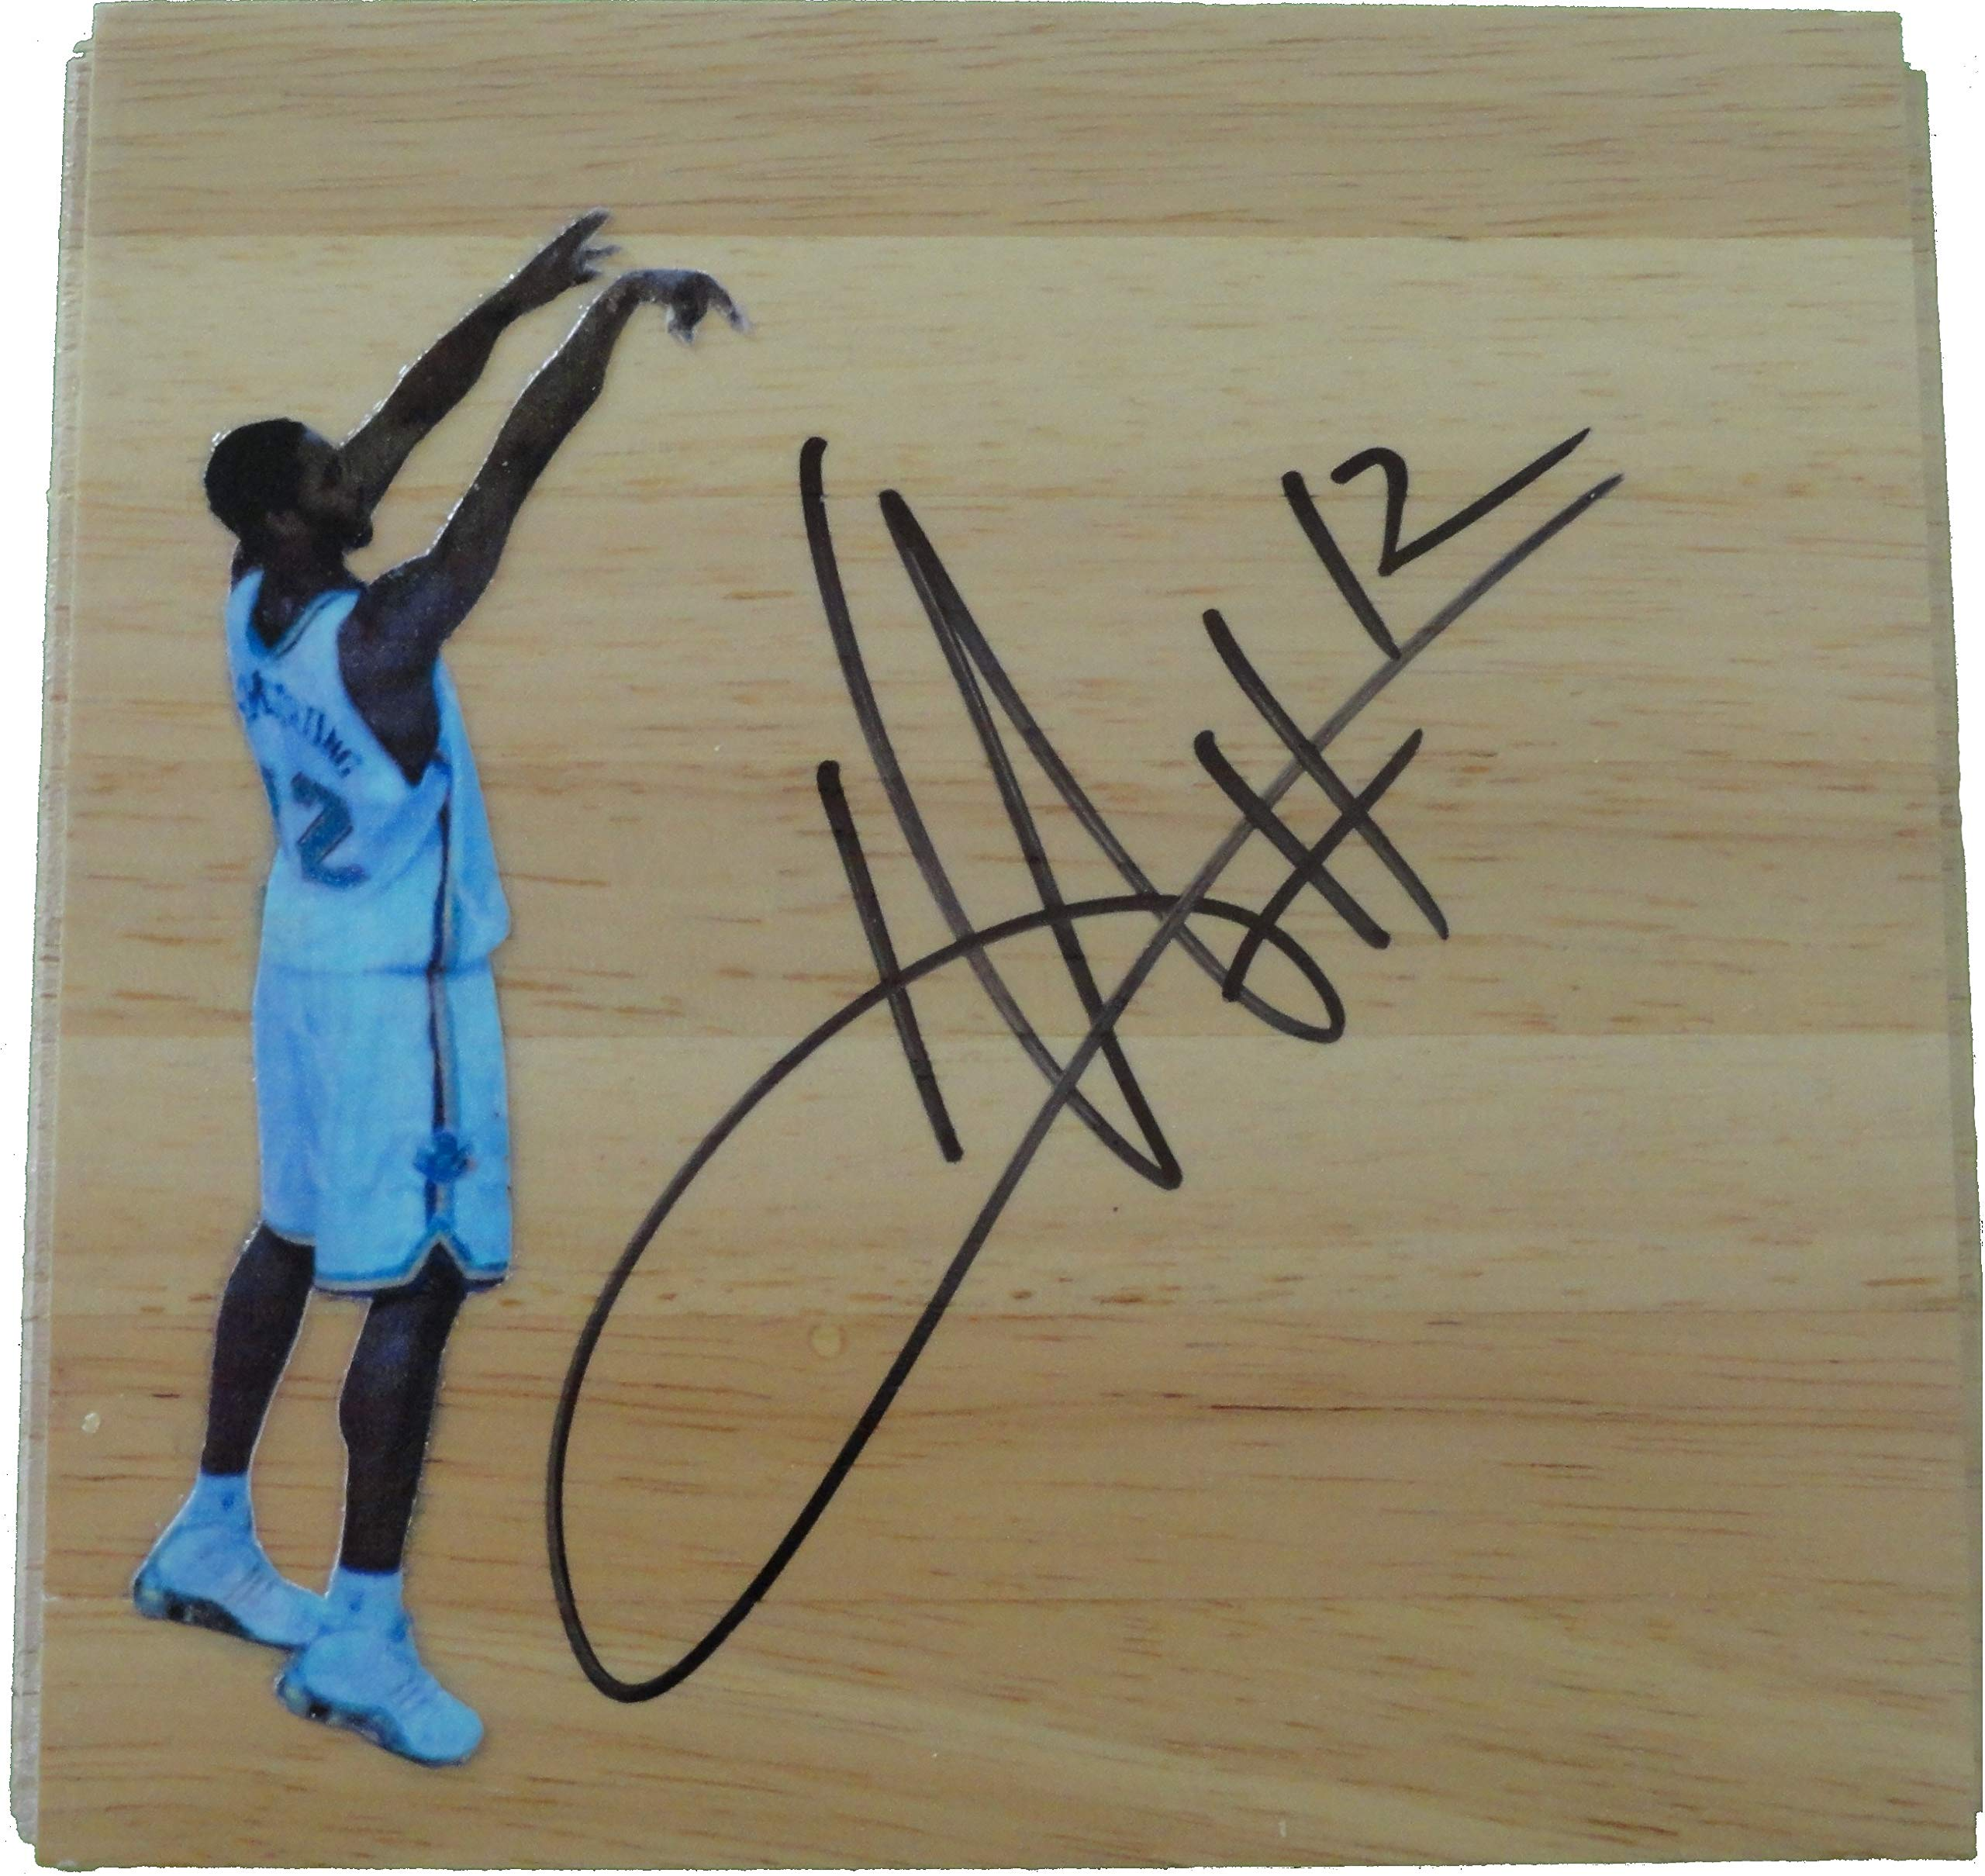 New Orleans Hornets Hilton Armstrong Autographed Hand Signed 6x6 Parquet Photo Floorboard with Proof Photo of Signing and COA Basketball Floor Boards